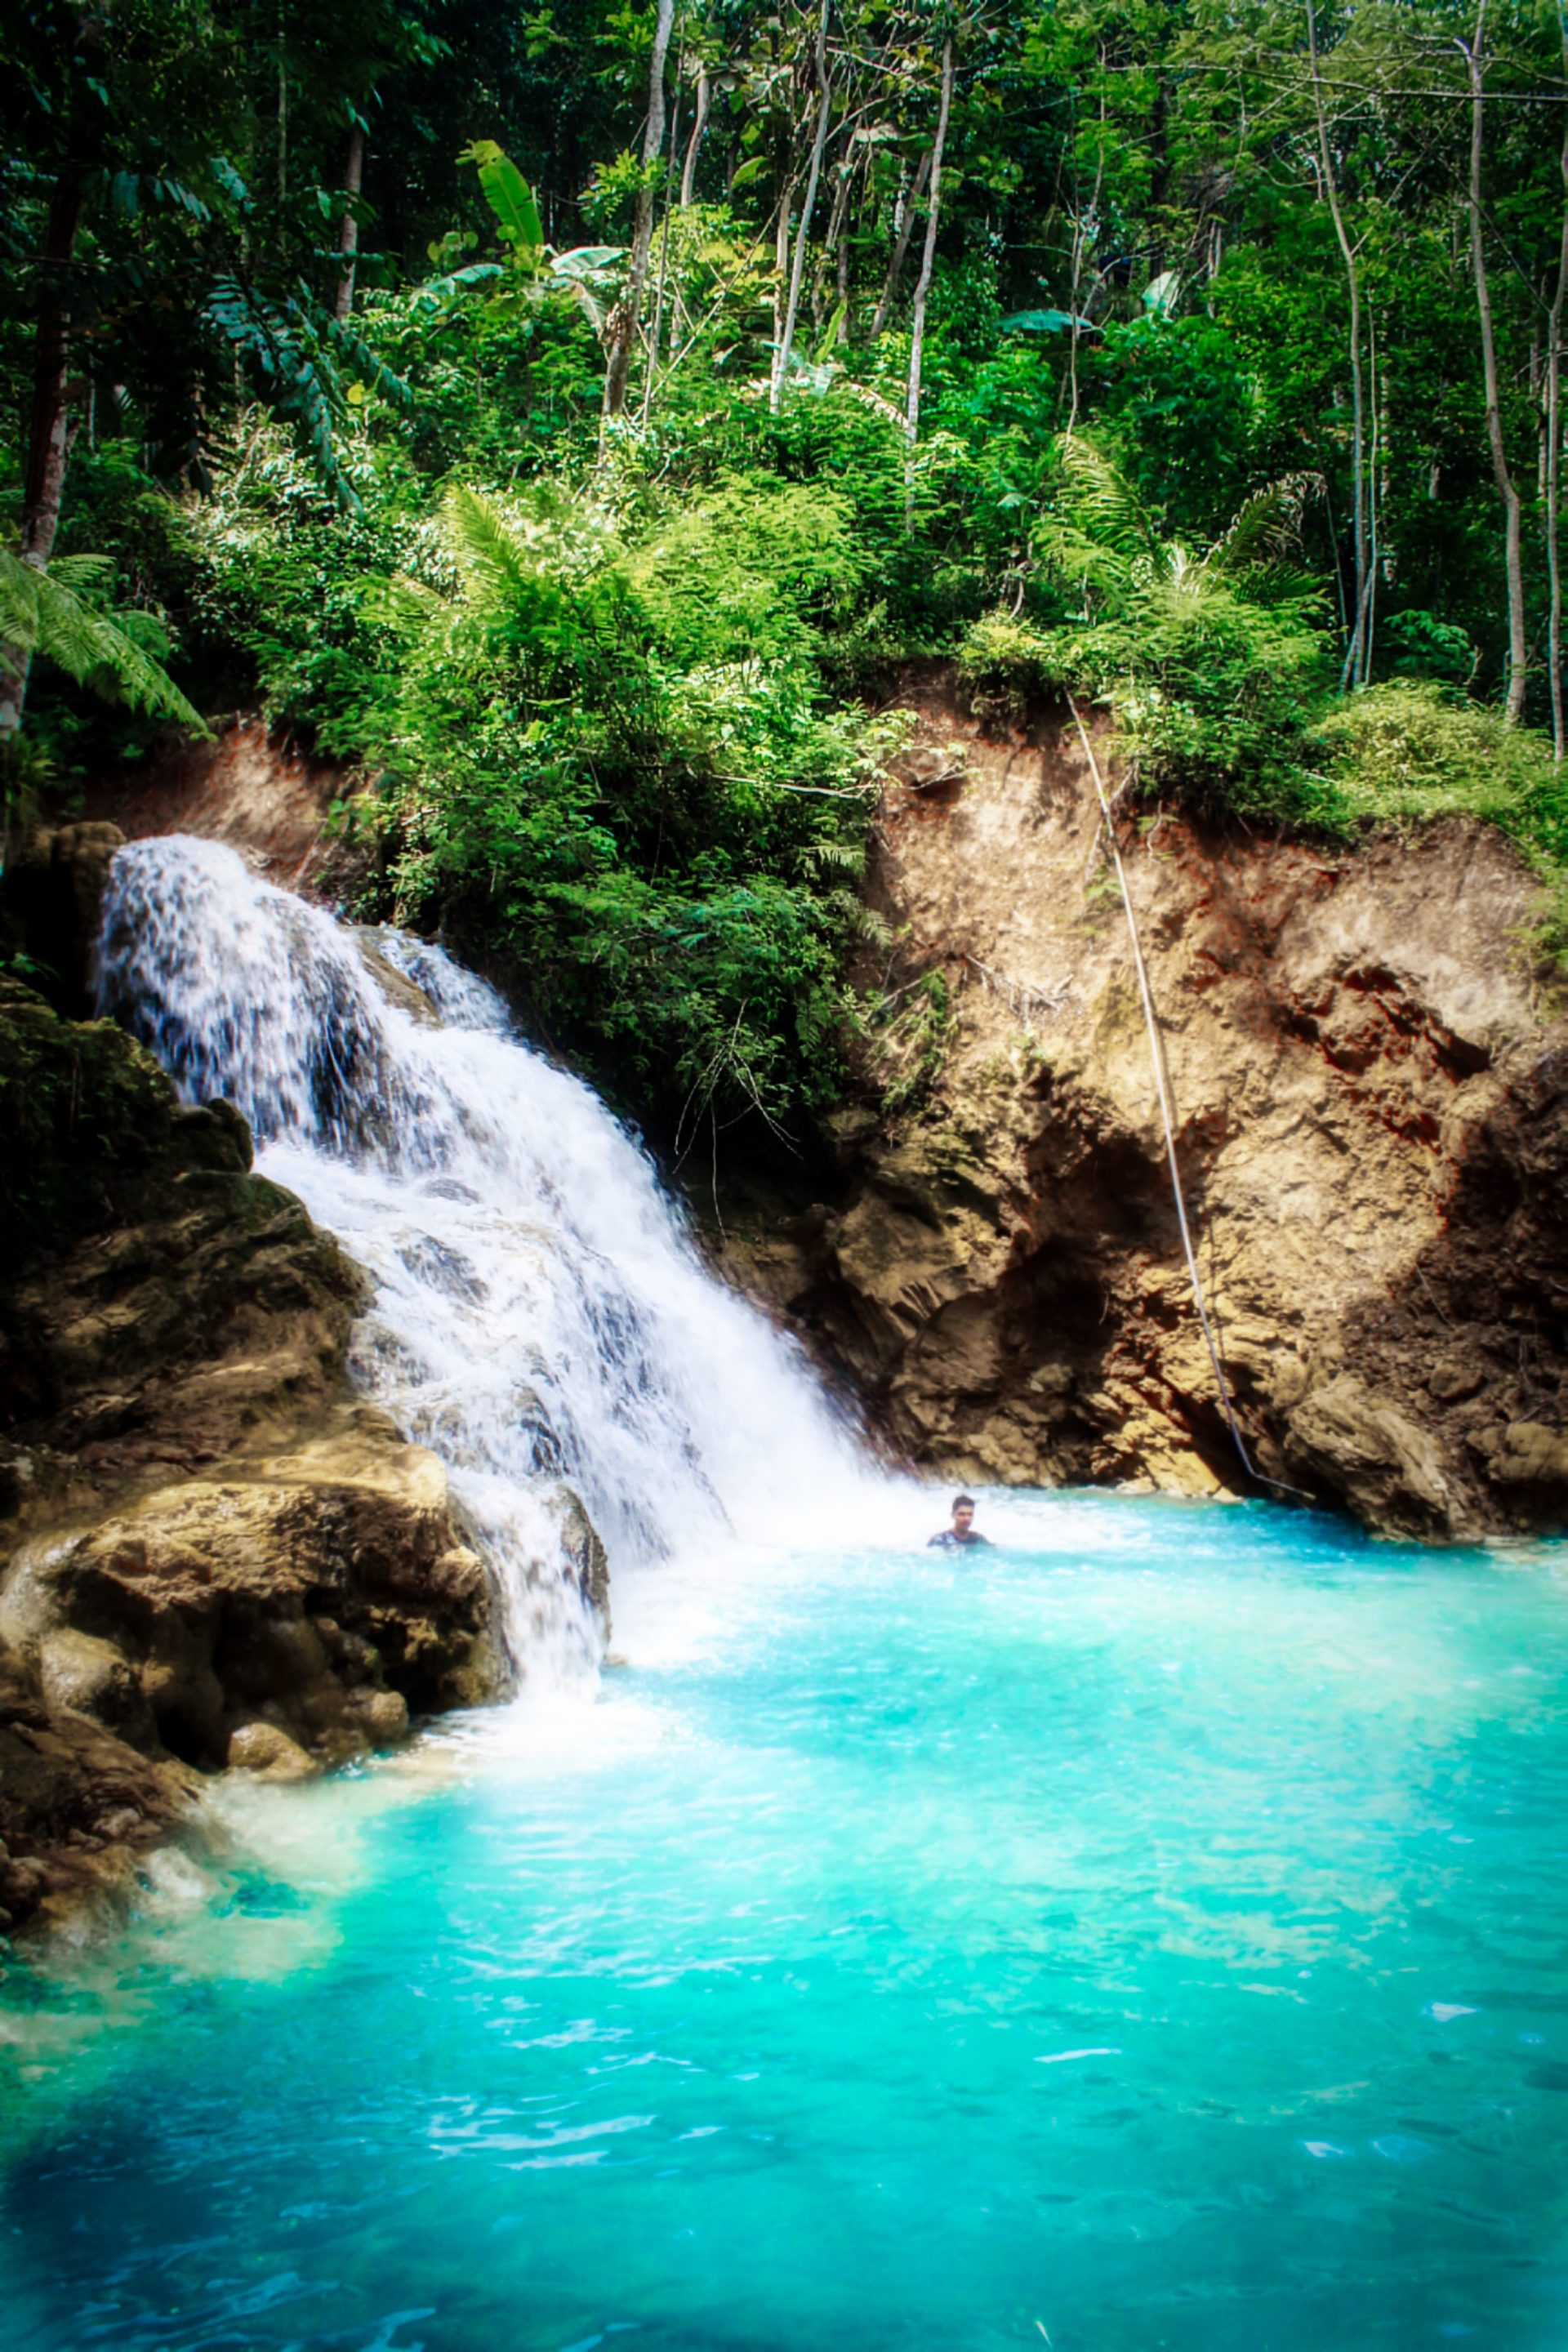 The beauty of Kembang Soka Waterfall